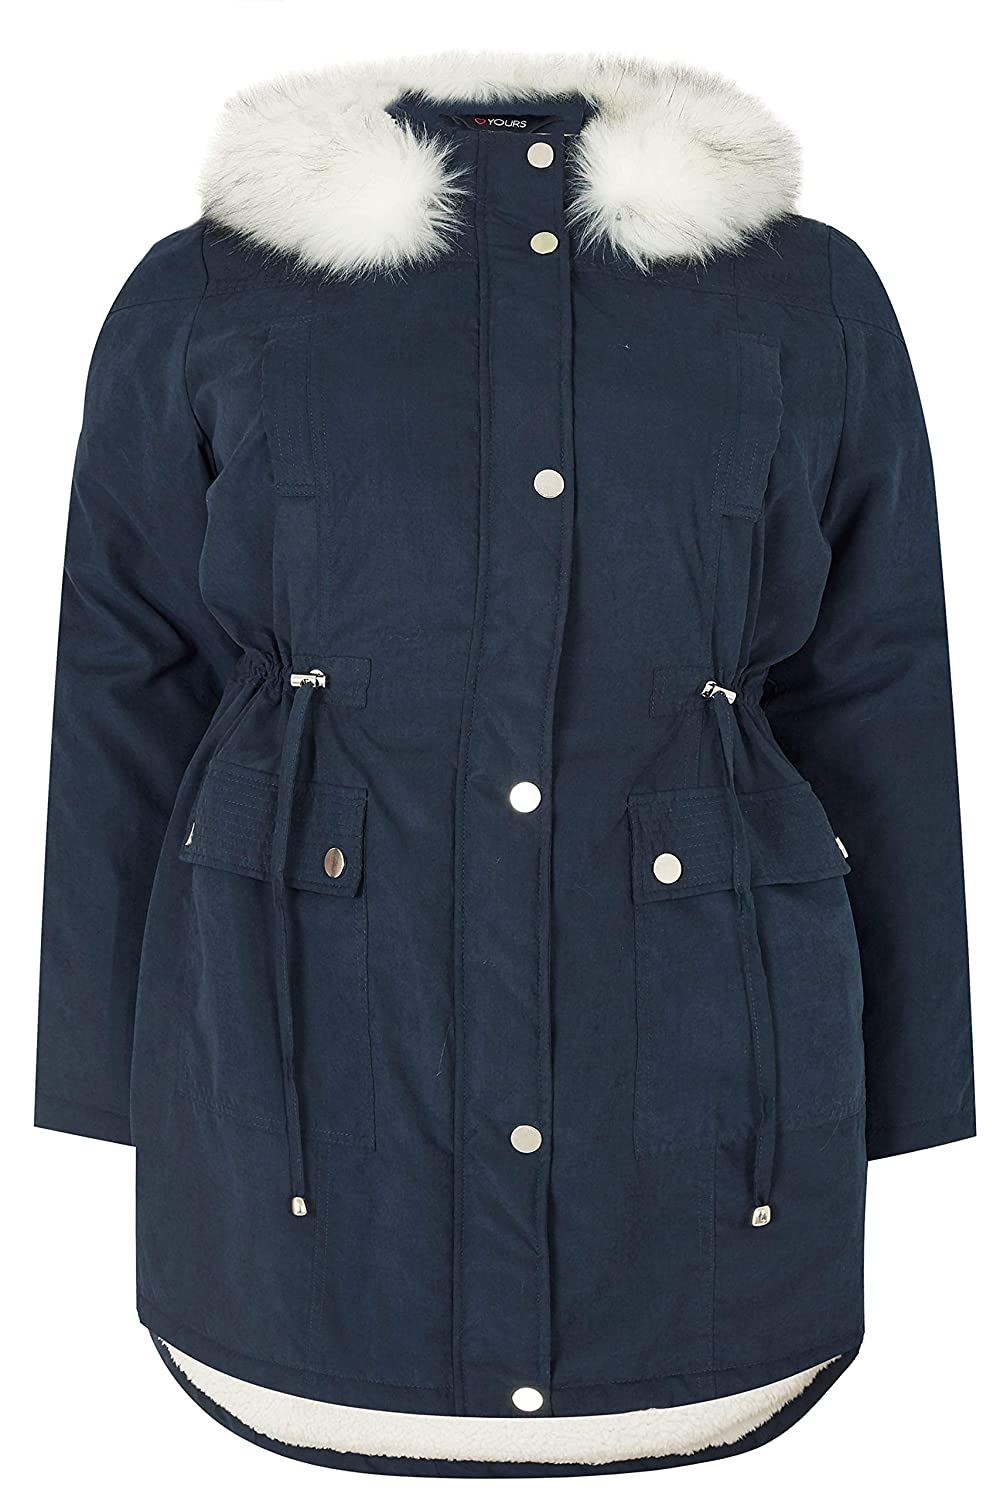 Yours Clothing Womens Plus Size Lined Parka with Faux Fur Trim Hood